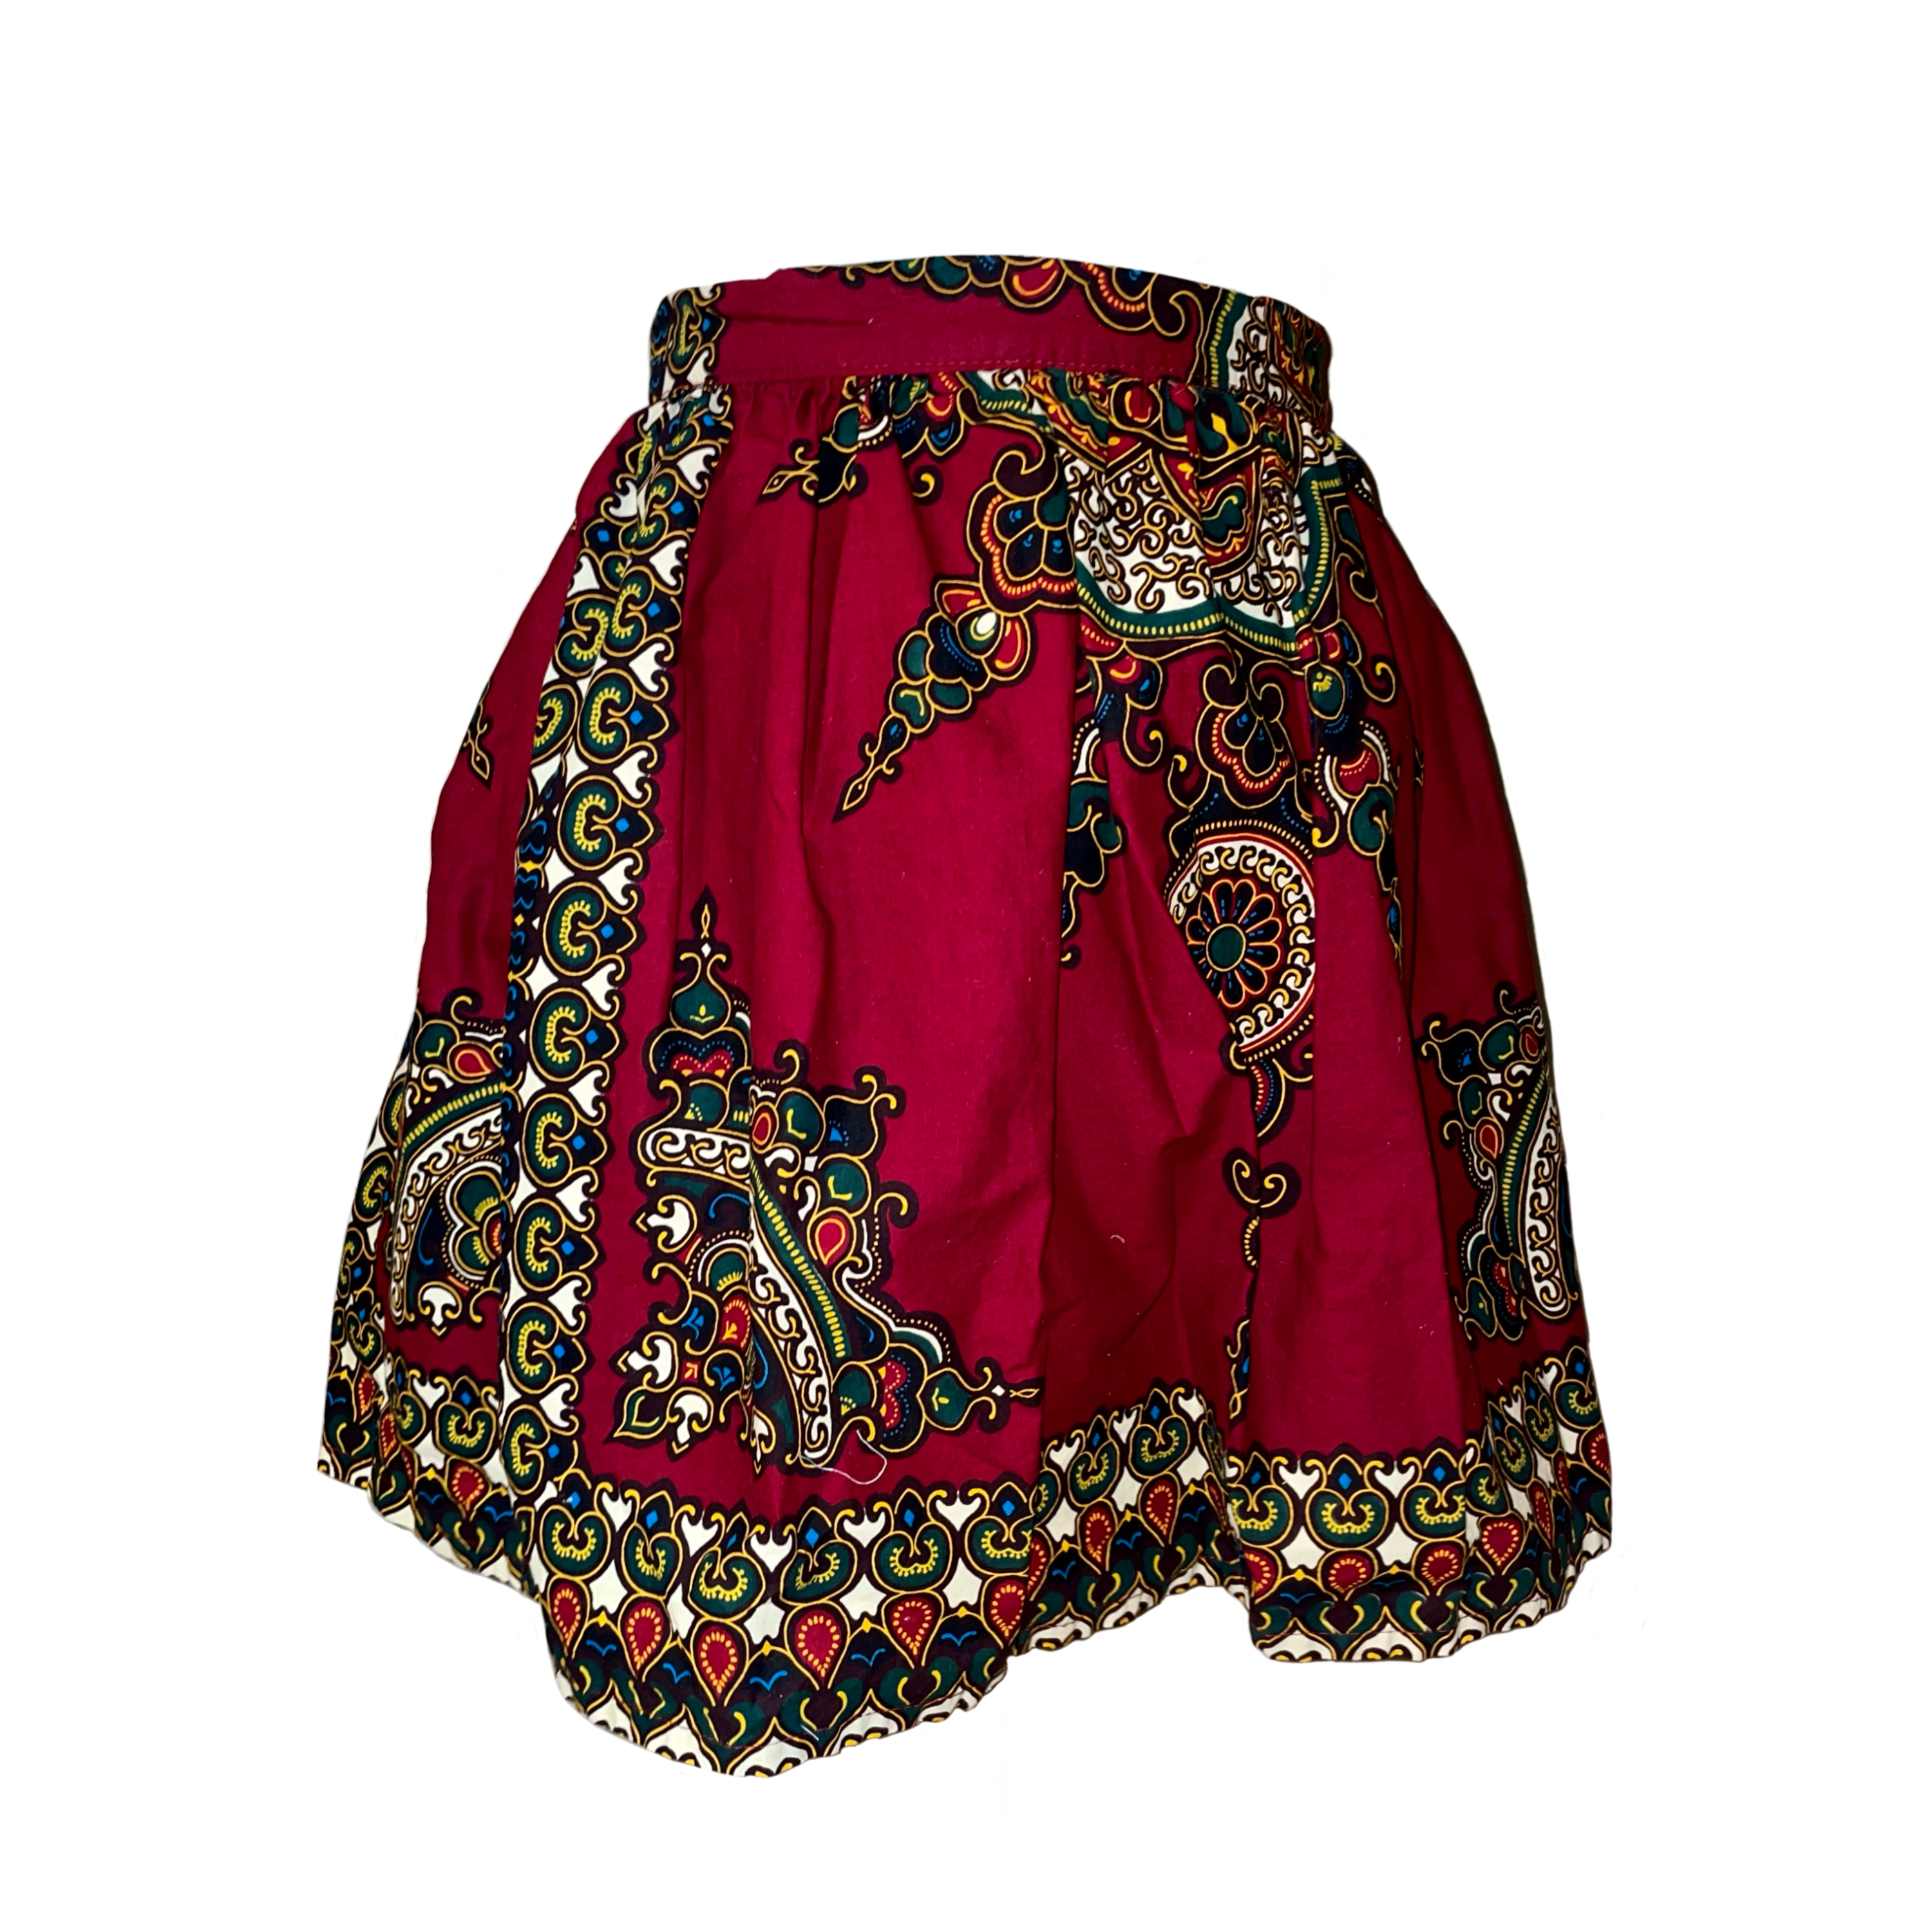 You are currently viewing Waist reduction on African print skirt